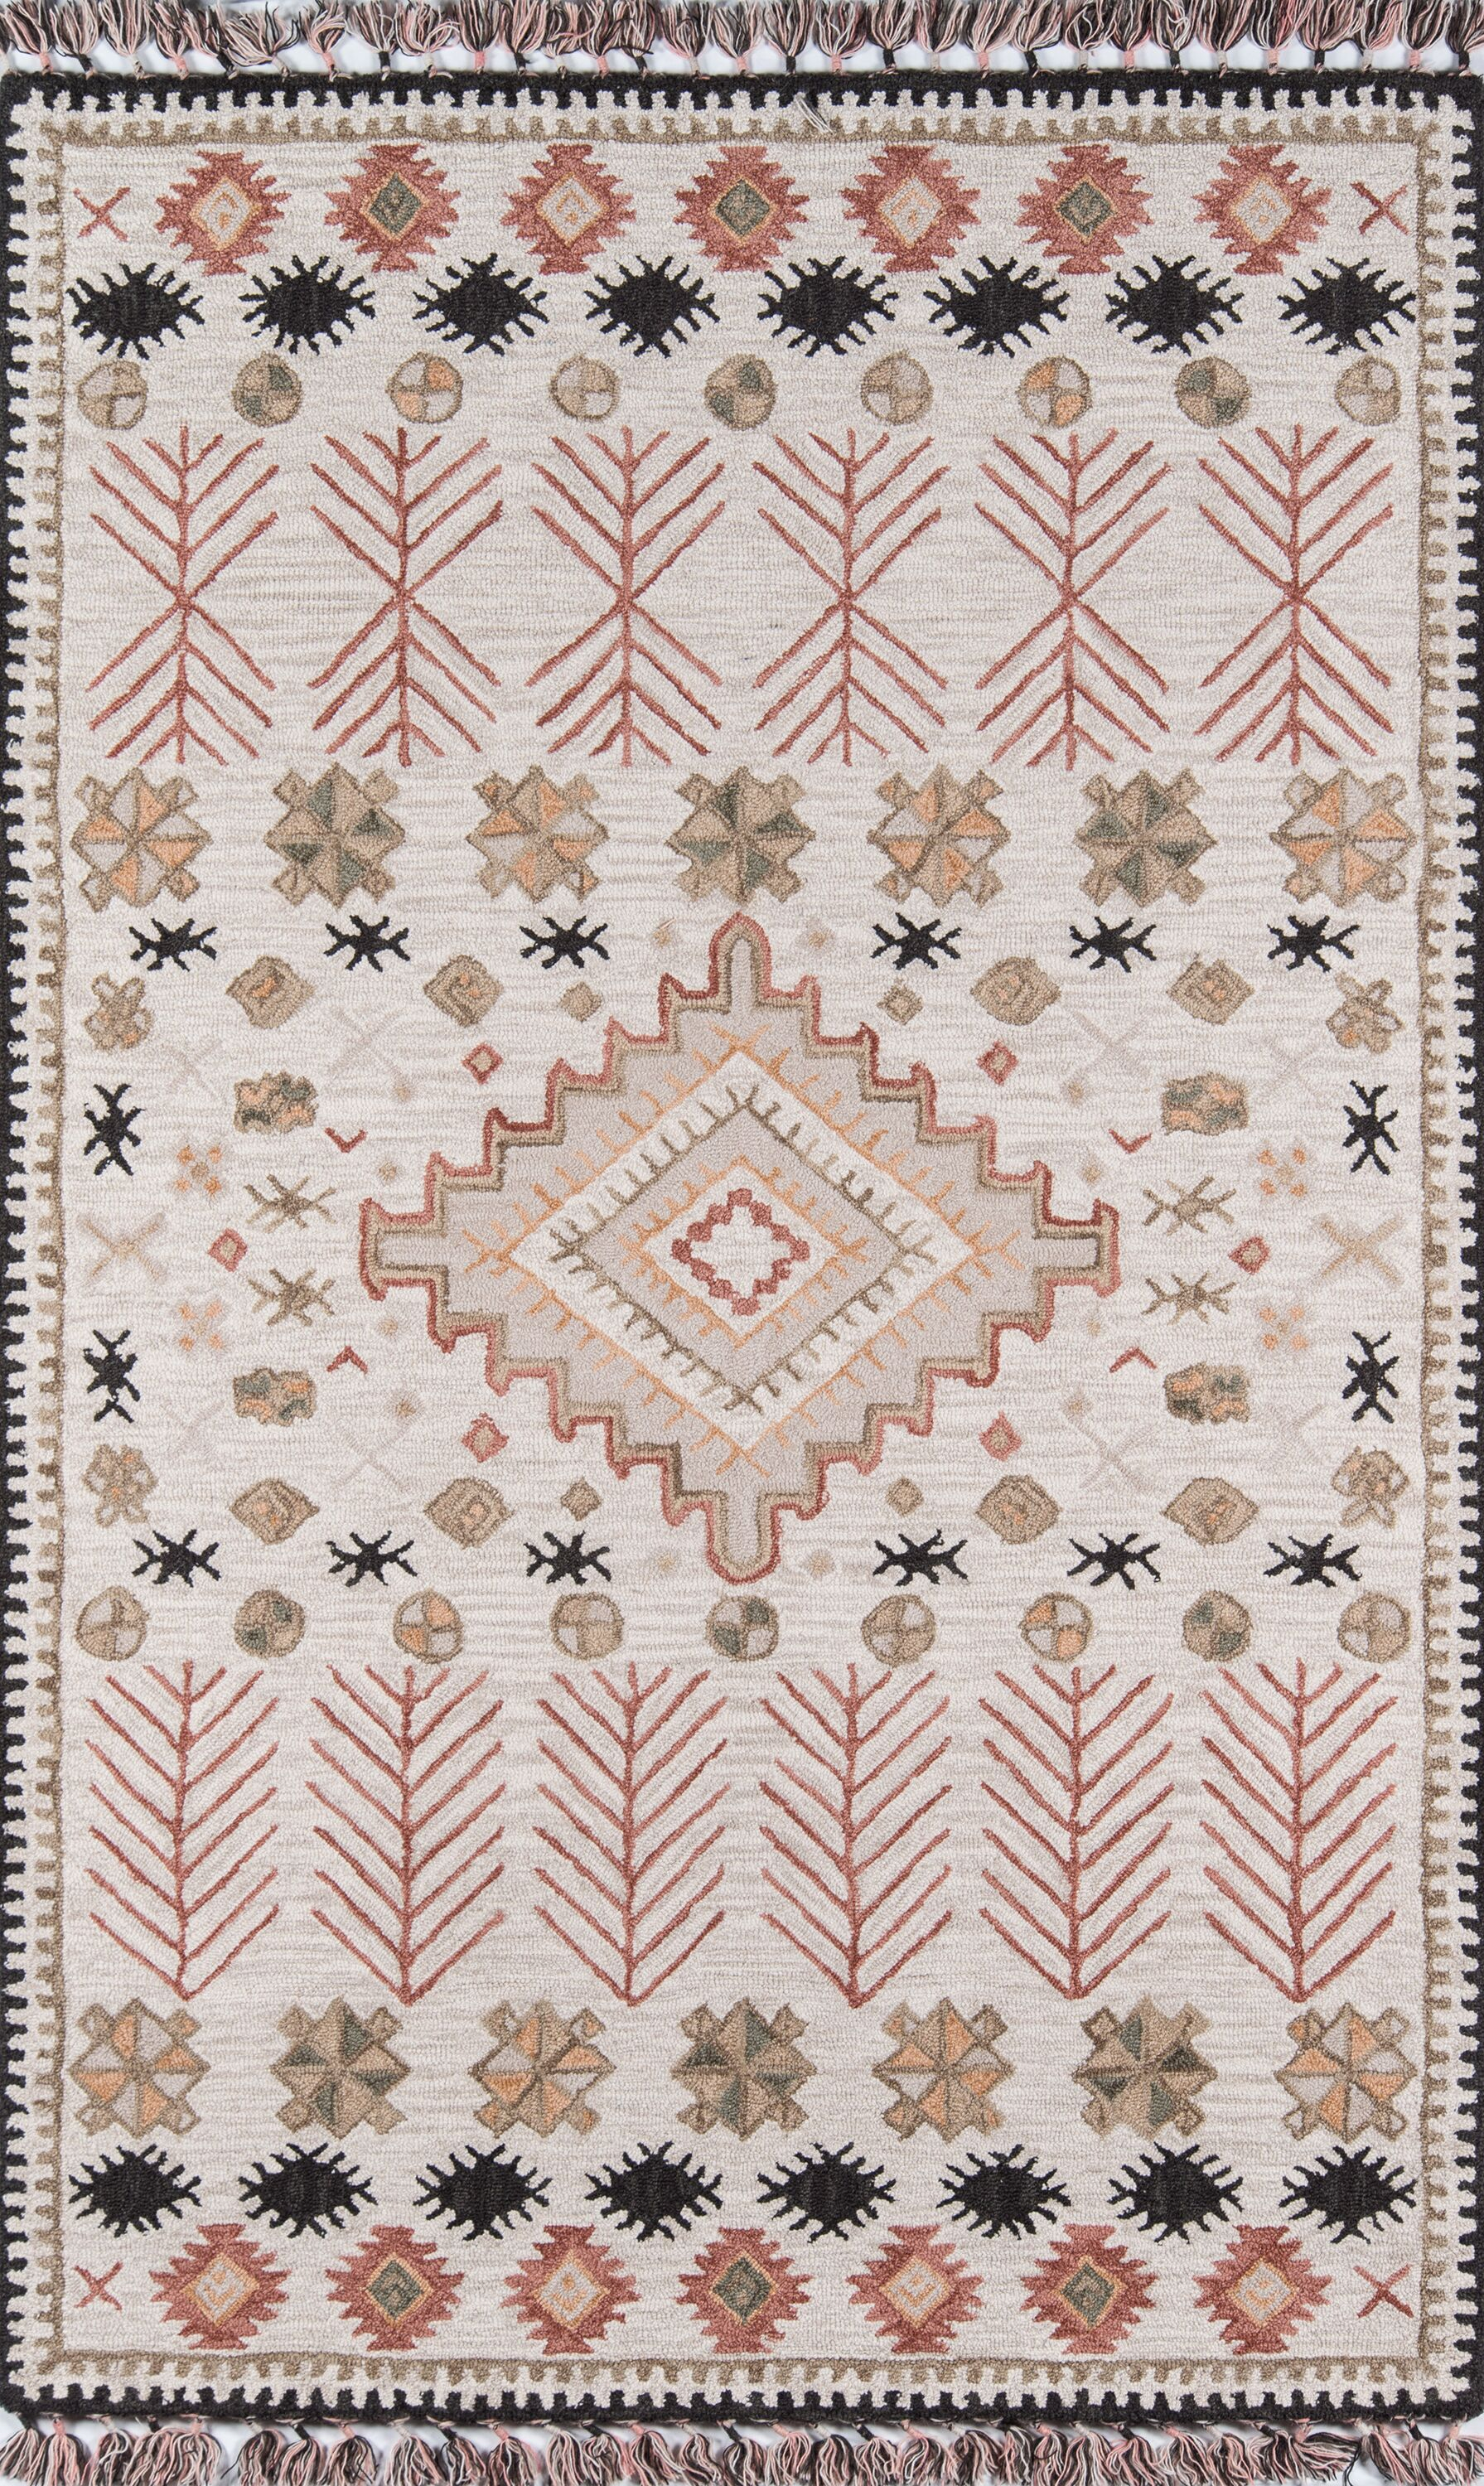 House Hand-Tufted Wool Pink/Beige Area Rug Rug Size: Rectangle 7'6